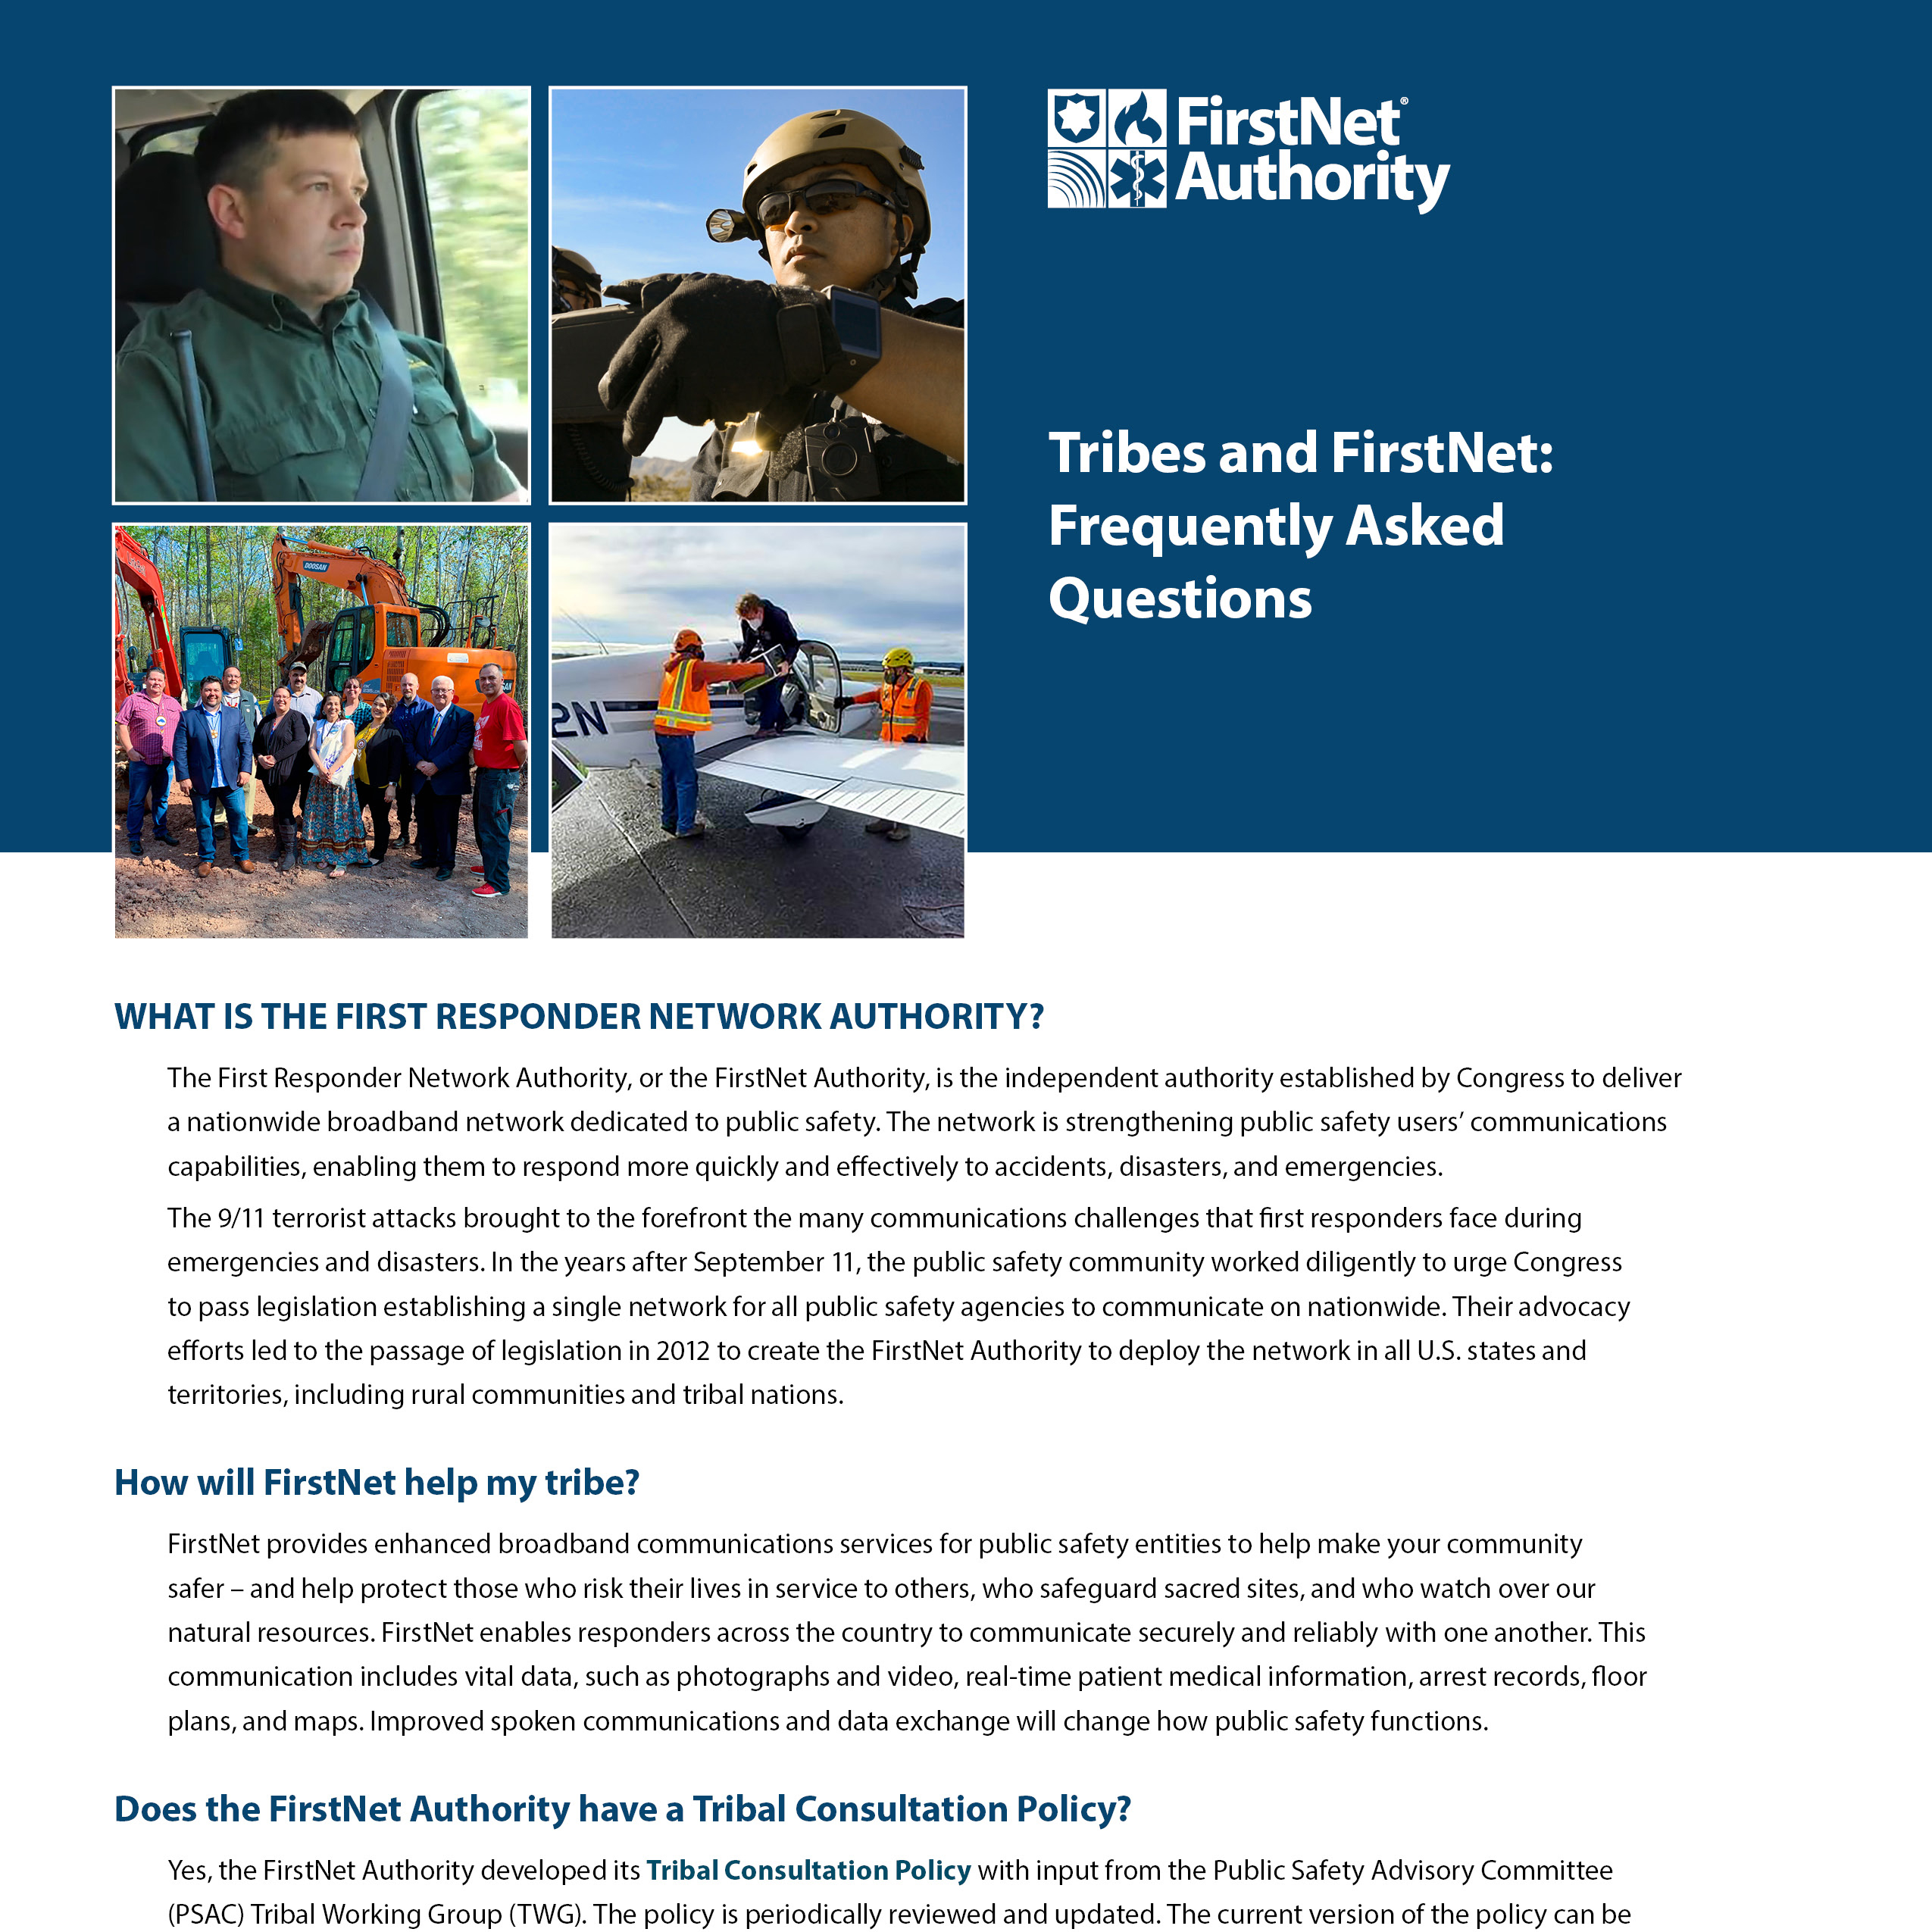 Tribes and FirstNet: Frequently Asked Questions